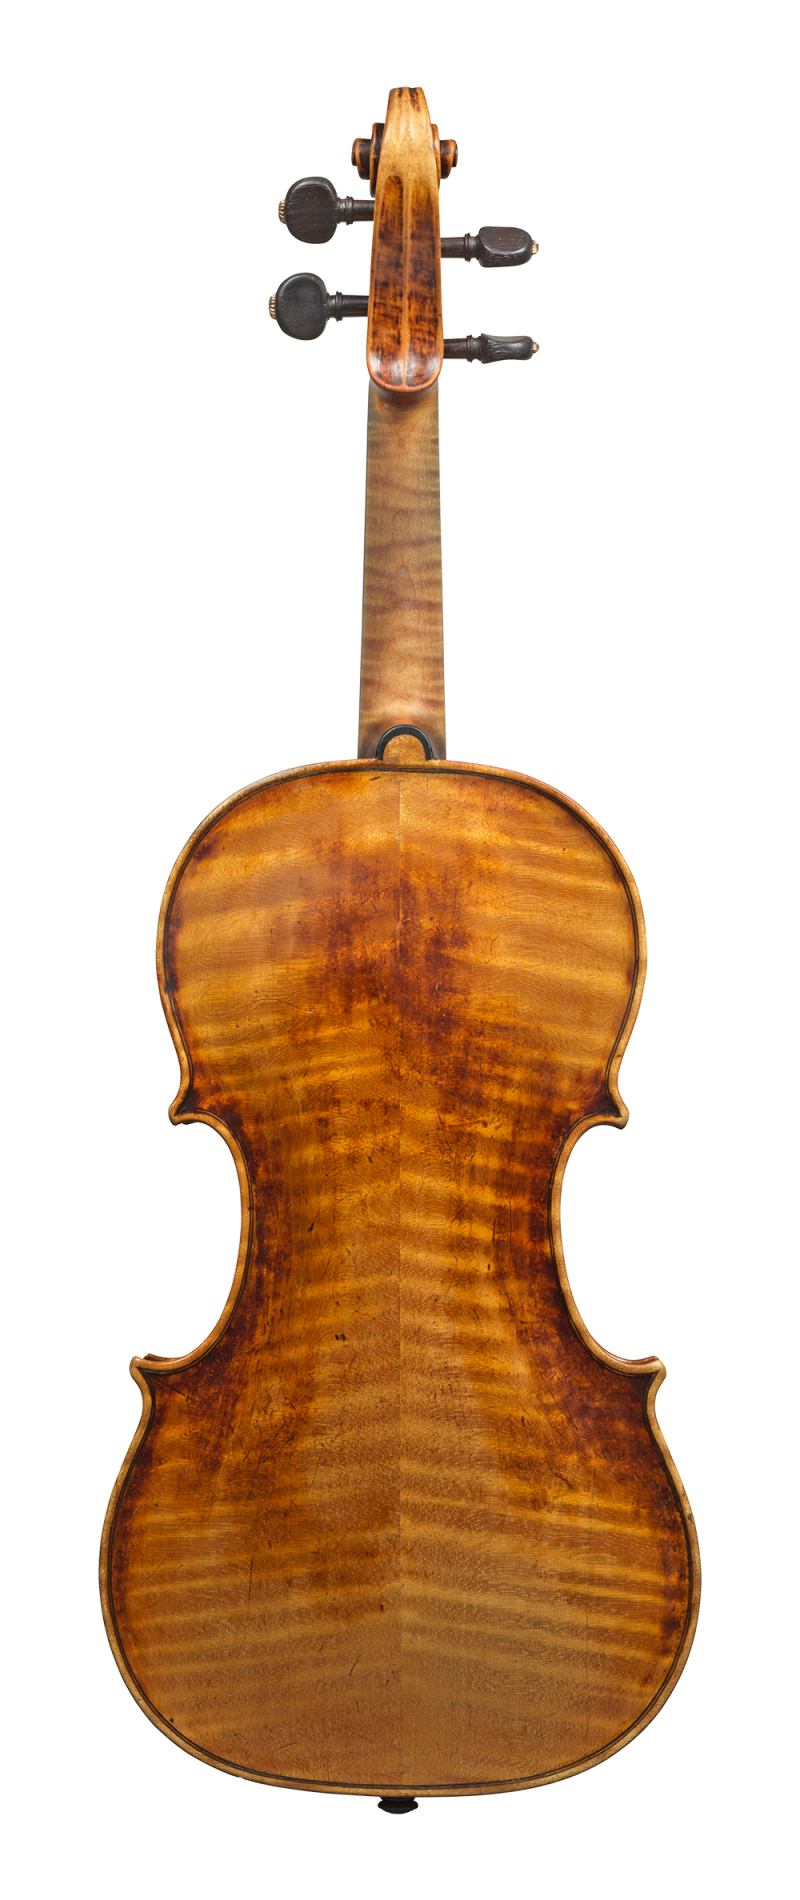 Back of a violin by David Tecchler, 1684. Its sound is very clear and bright across all strings, the response is very quick and articulate.